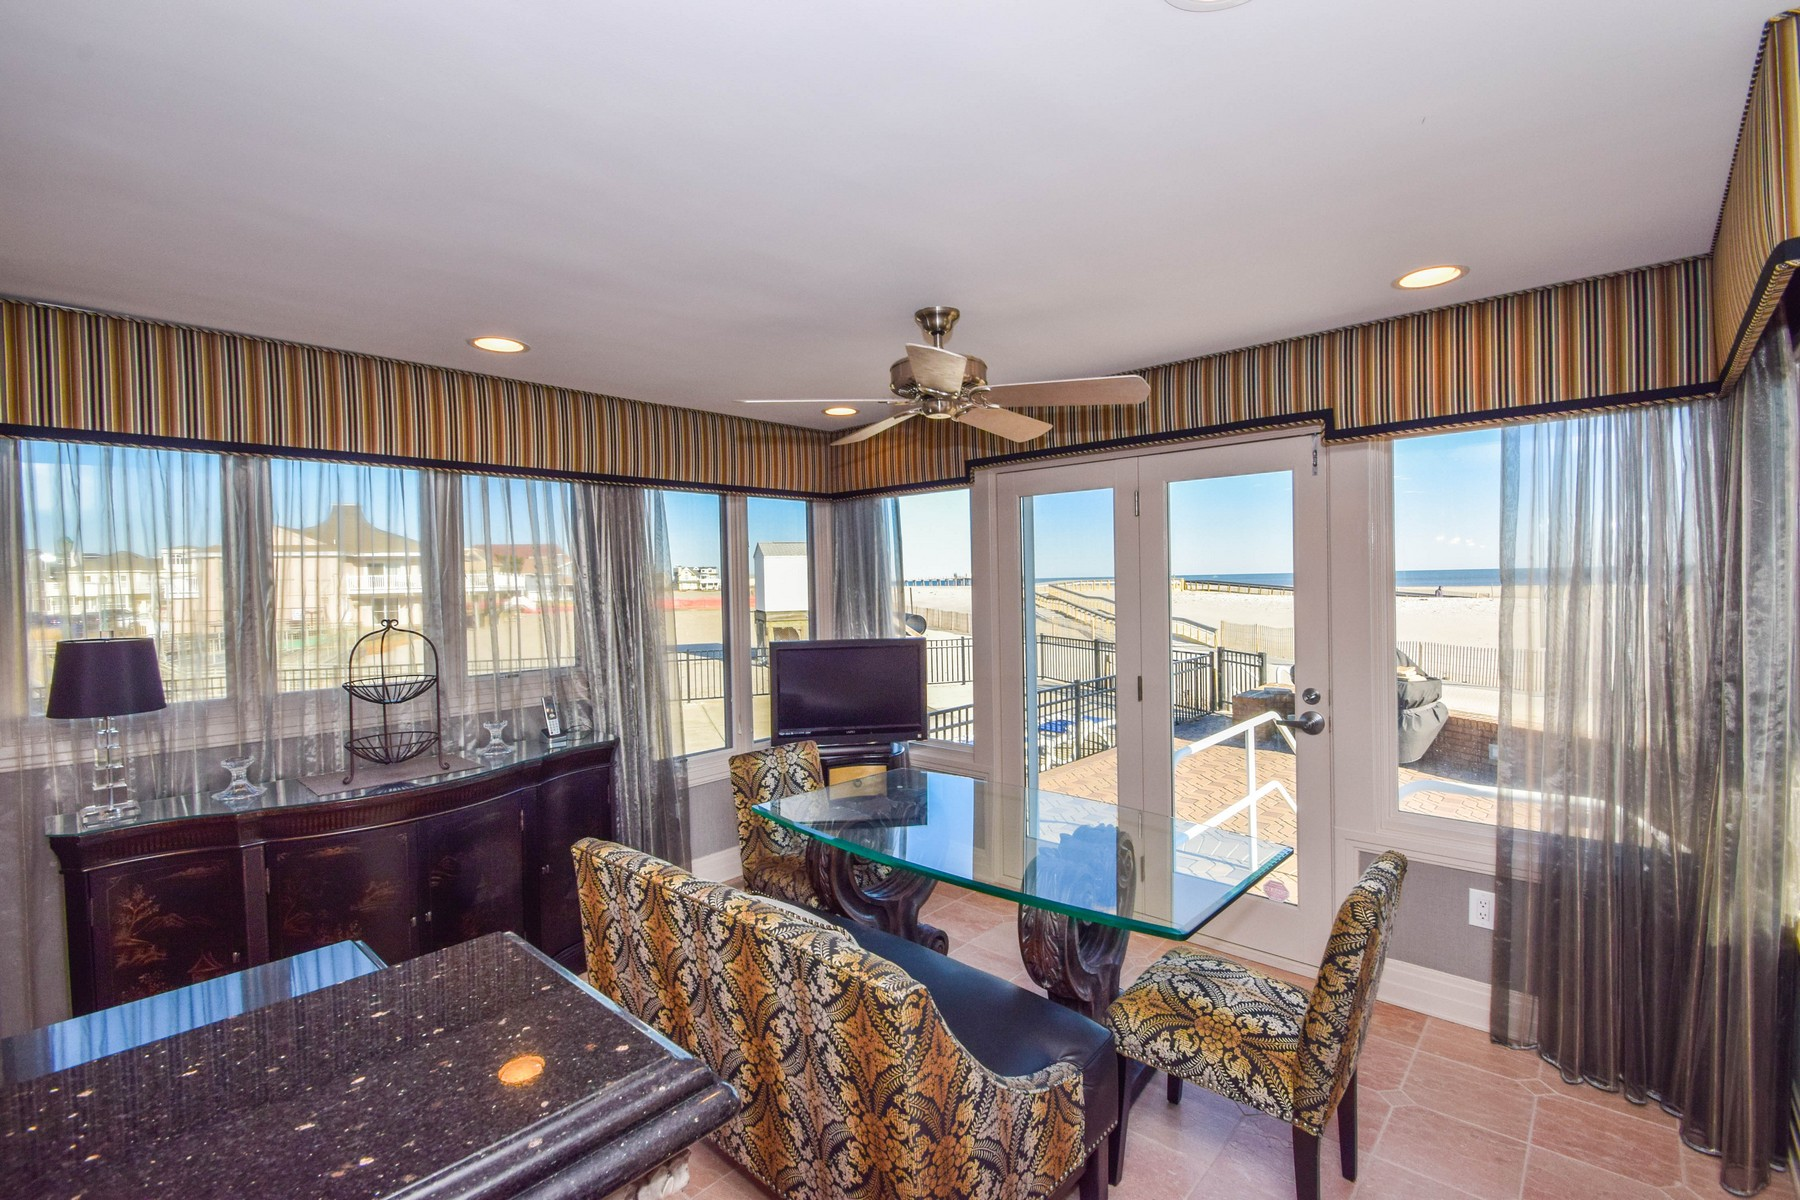 Additional photo for property listing at 7 Dolphin Drive 7 Dolphin Drive Margate, New Jersey 08402 United States